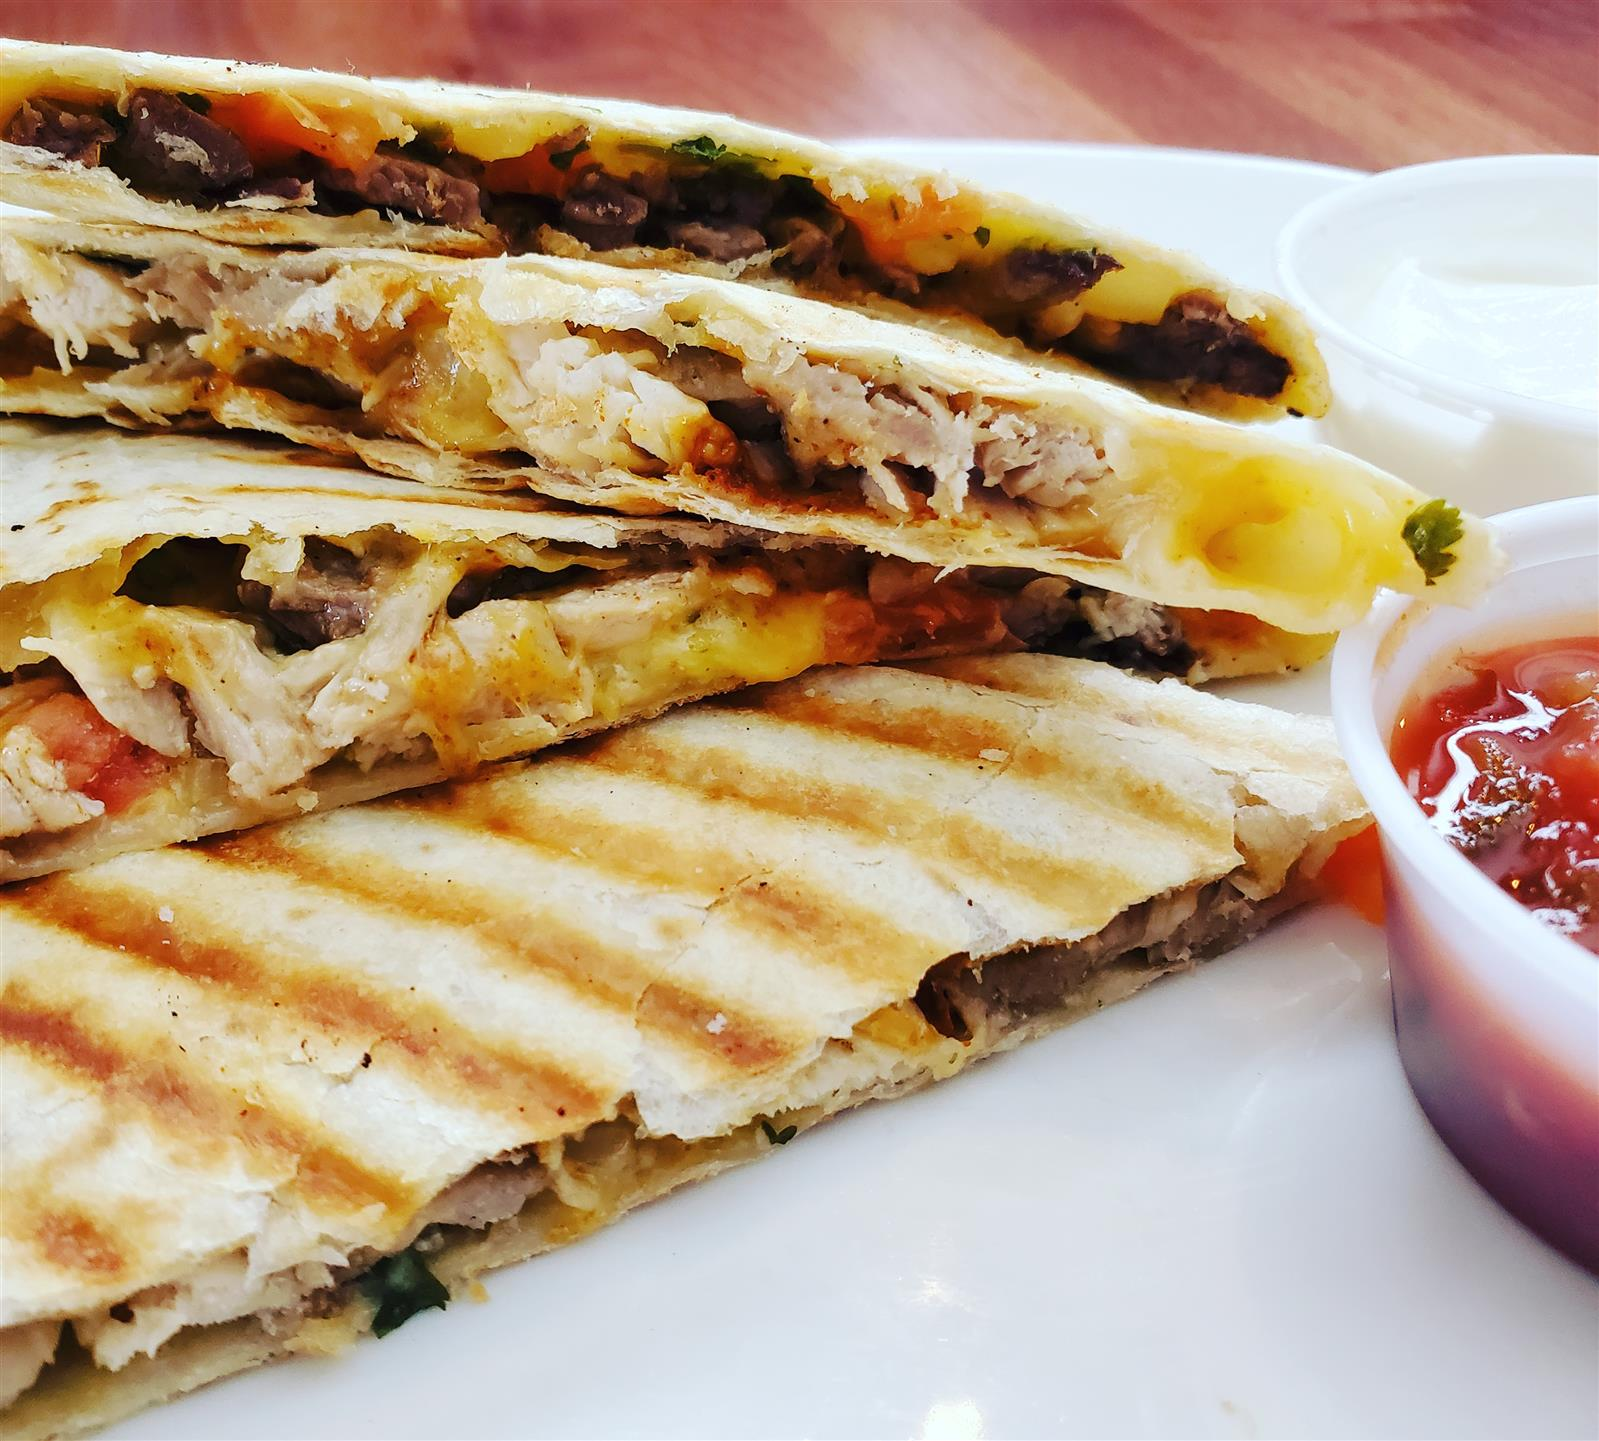 beef quesadilla with dipping sauce